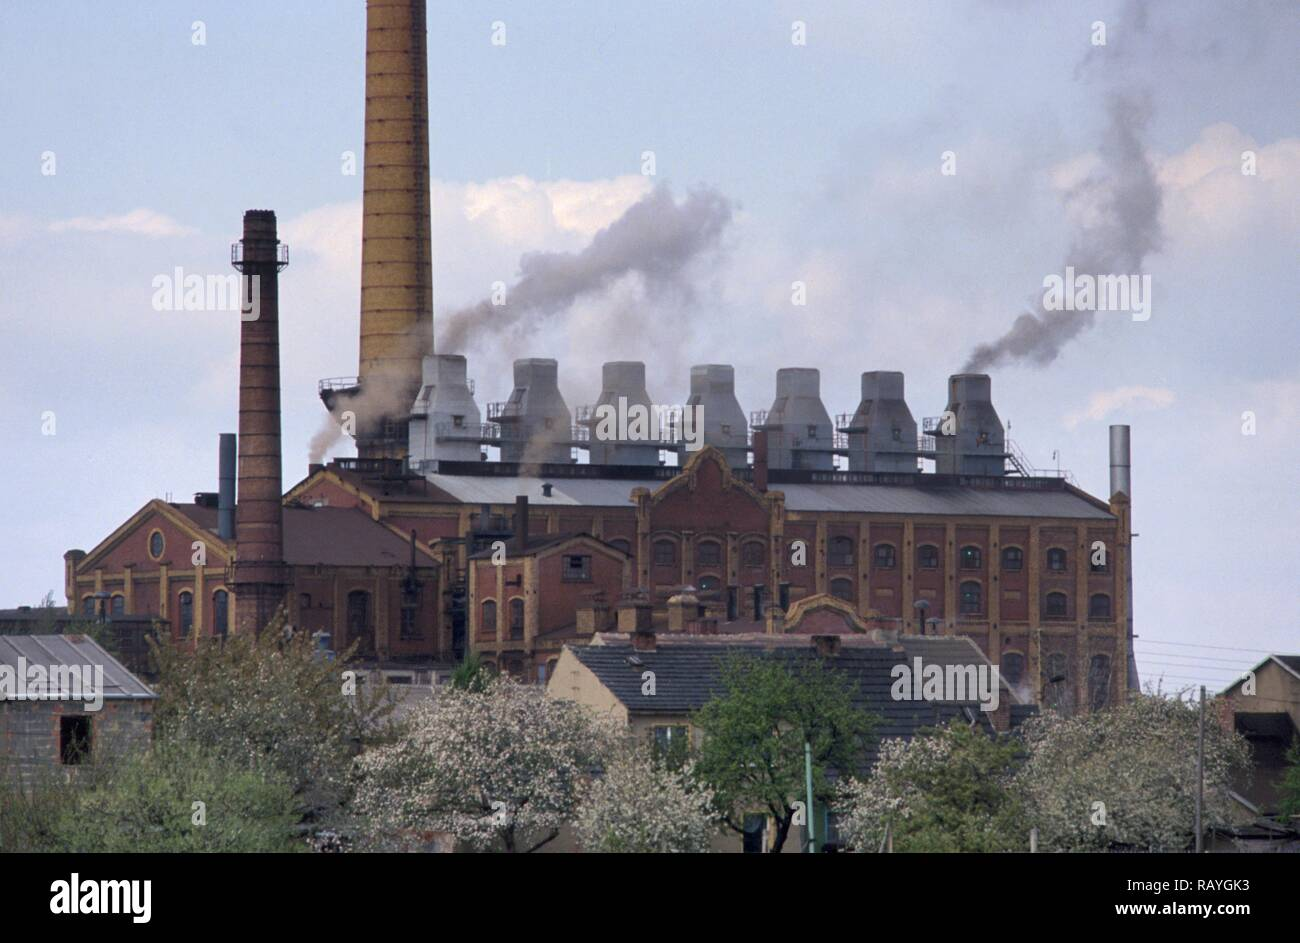 East Germany, plant for the refinement of the lignite coal (brown coal) - Stock Image